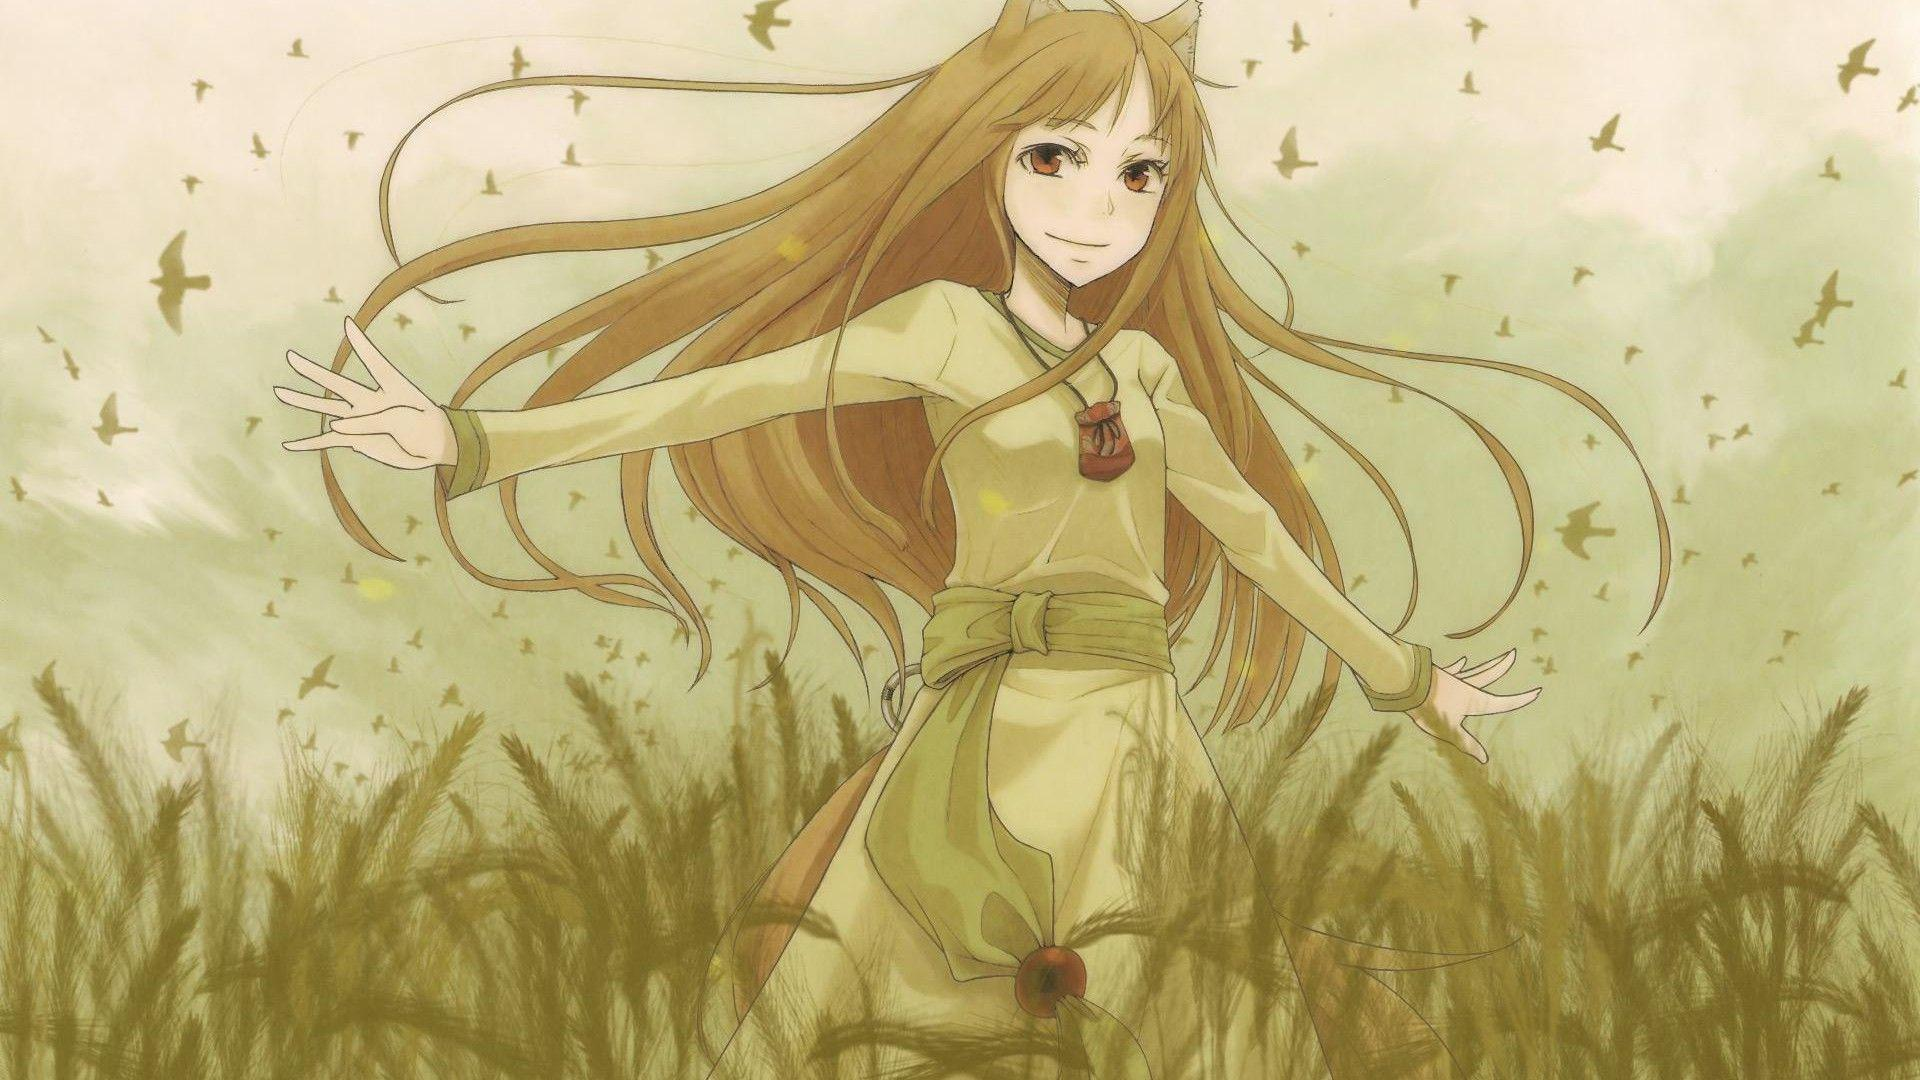 Horo Spice And Wolf Wallpaper x ID